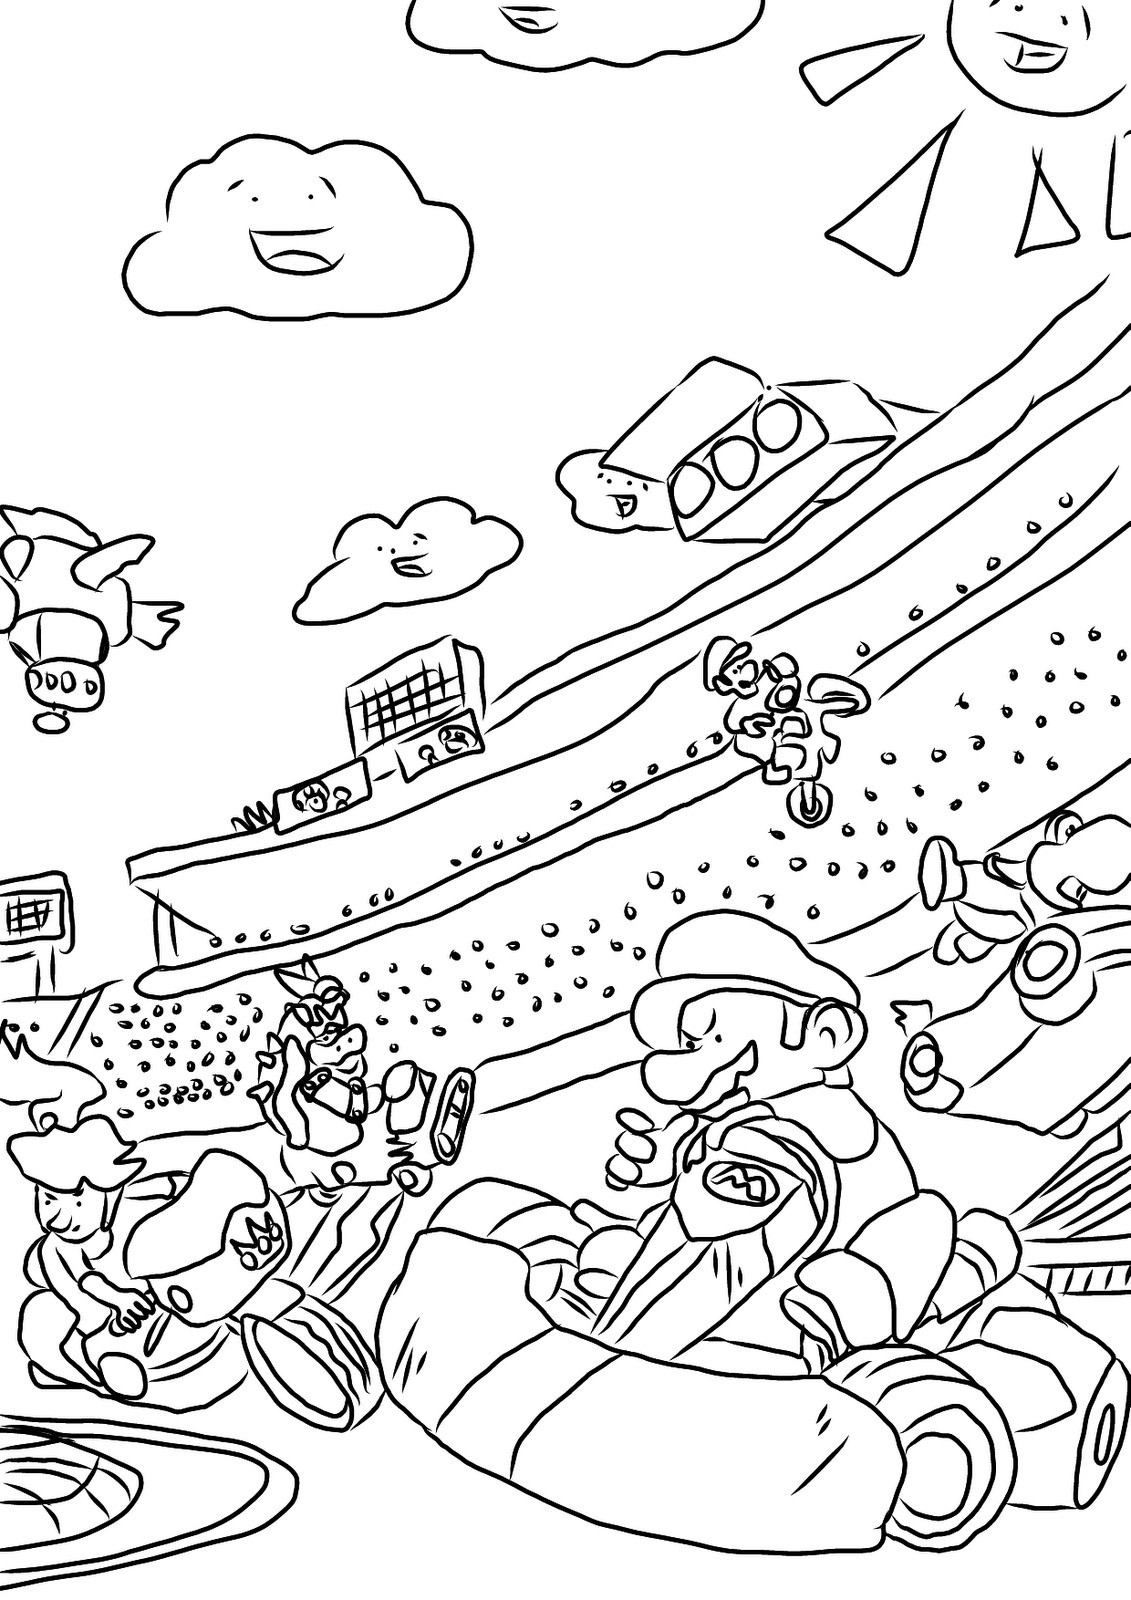 Image 14 Of 50 Super Mario 3d World Coloring Coloring Pages